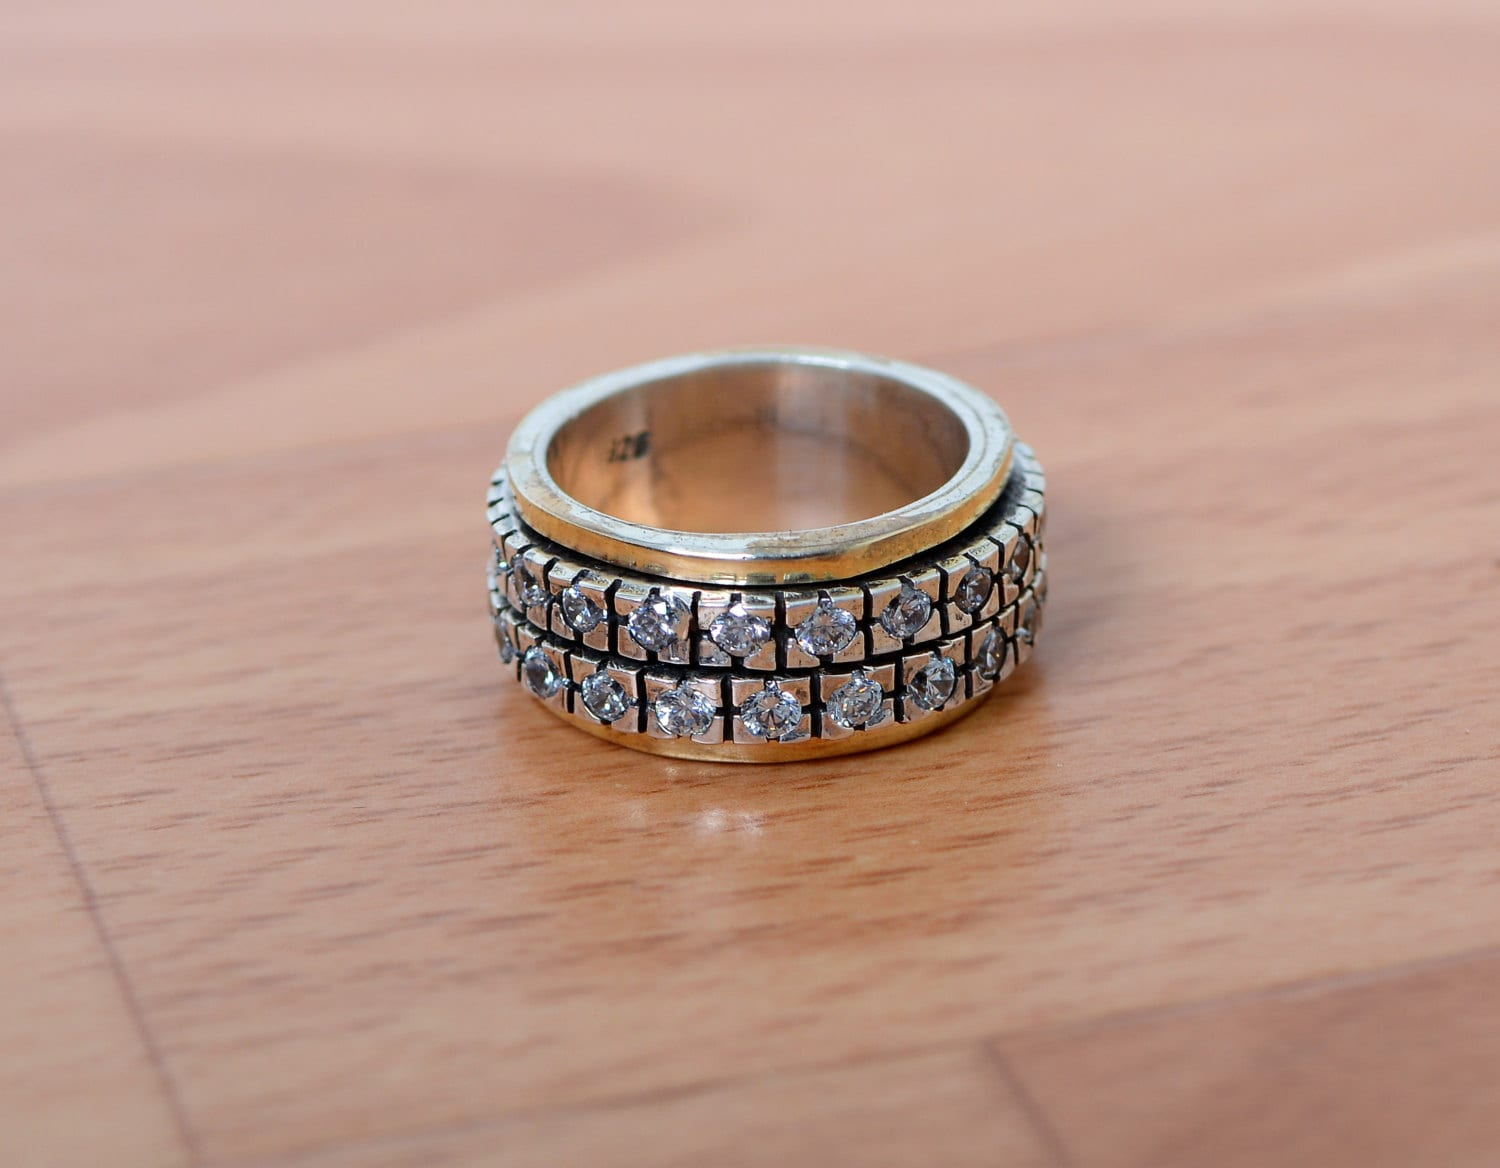 Multistone Spin Ring Silver and 9K Gold Ring Wedding Ring